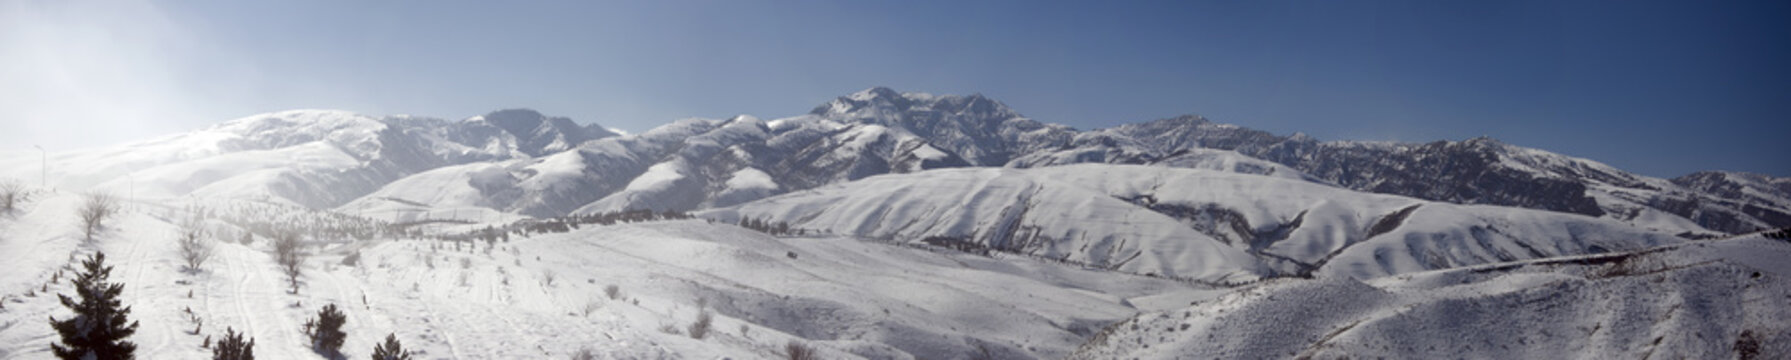 : Winter in the mountains of Kopet-Dagh in the suburbs of Ashgabat